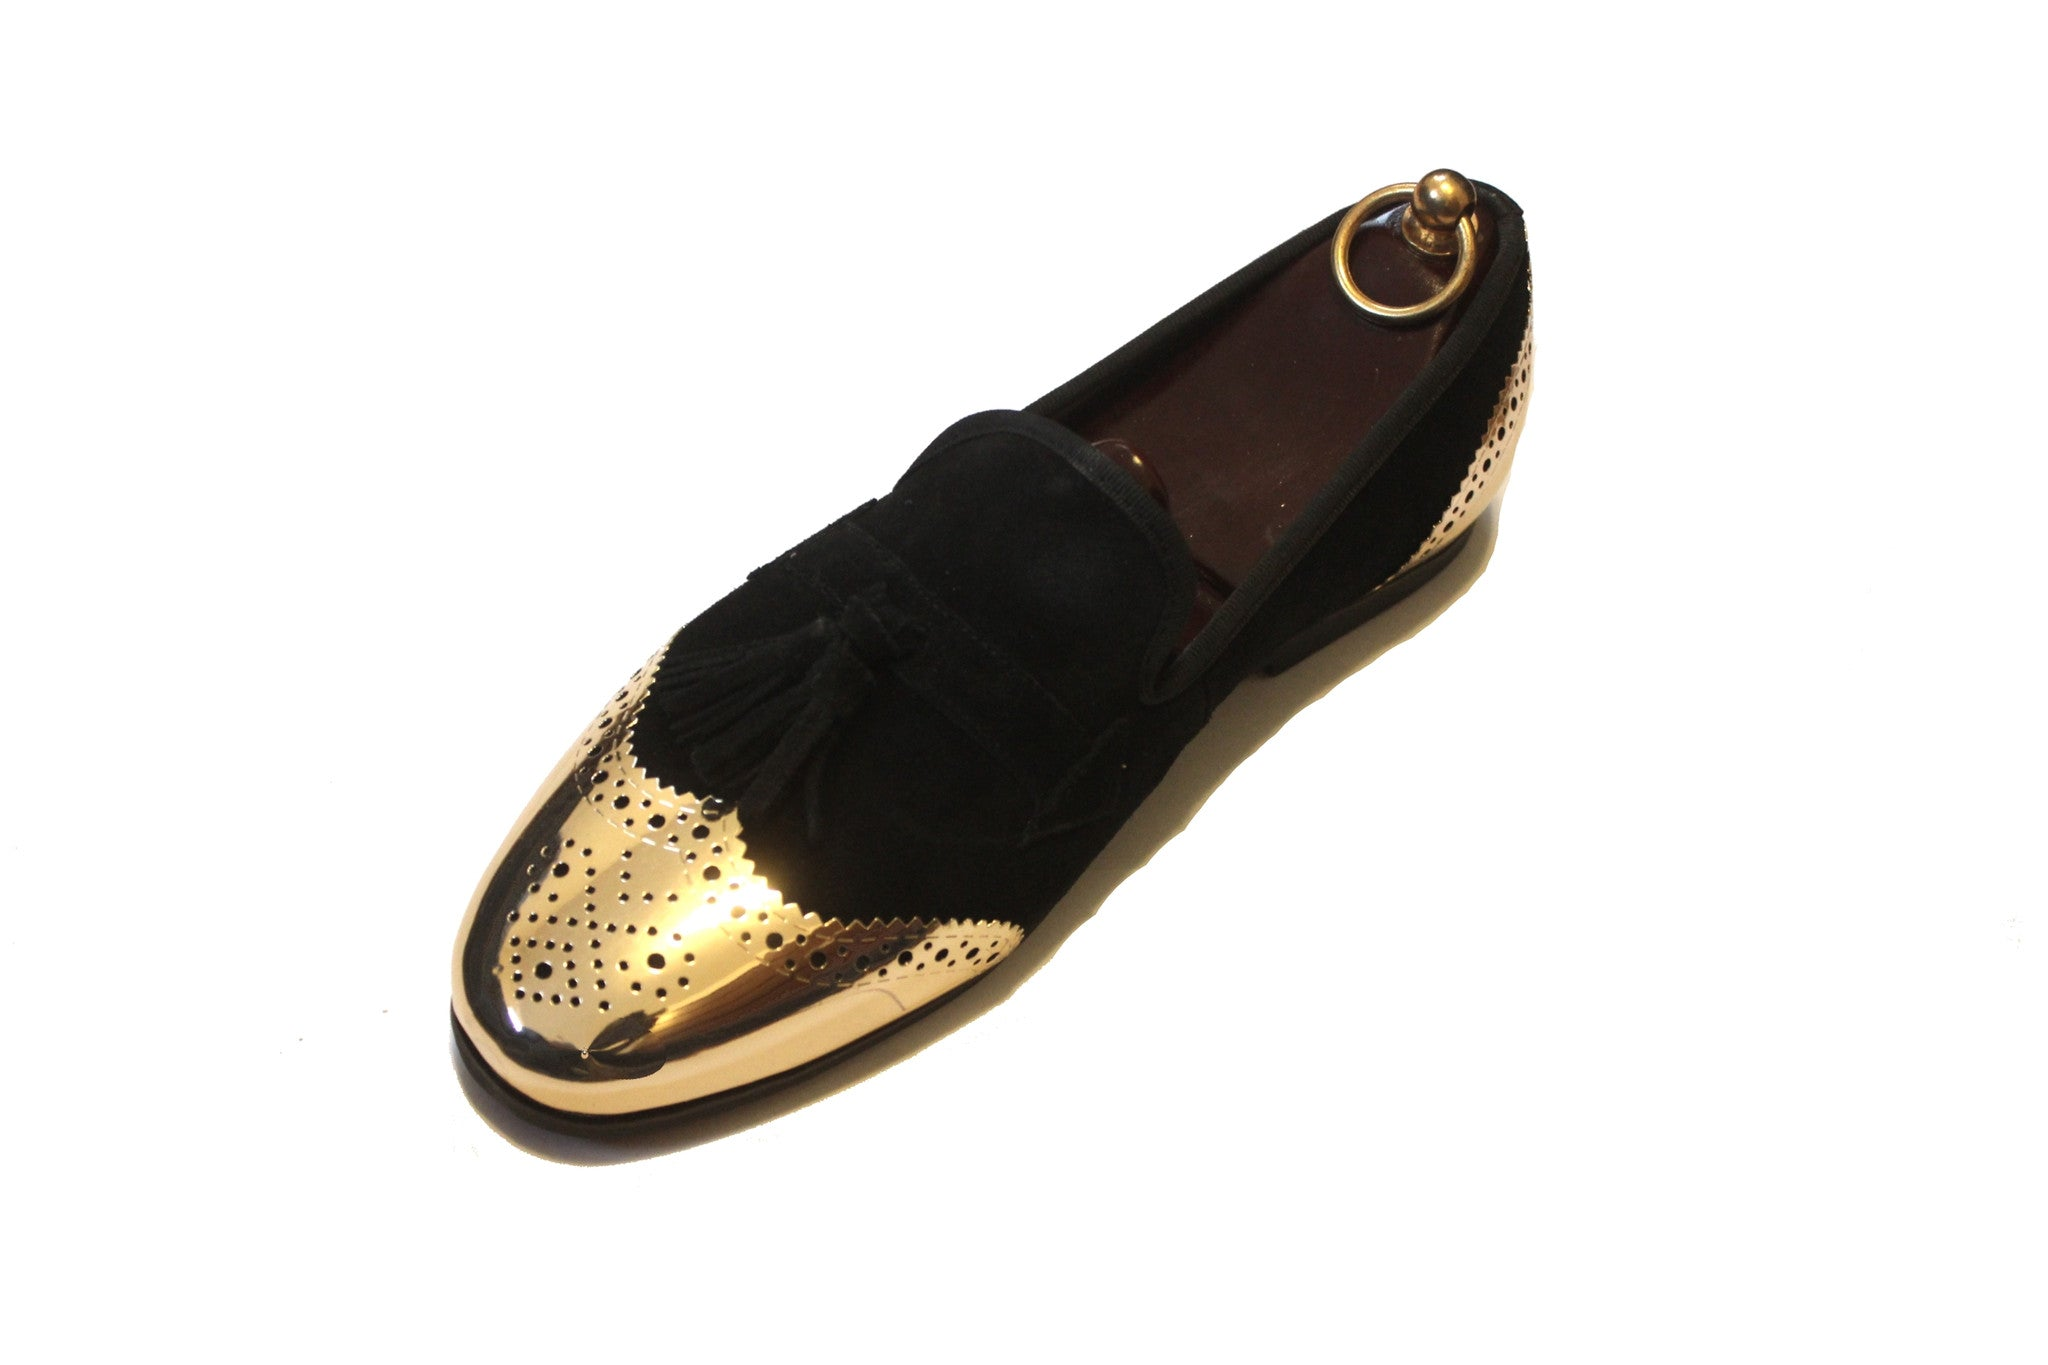 ea854dab201 Limited Edition Gold Toe Cap Black Suede Tassel Loafers Princely – Smythe    Digby